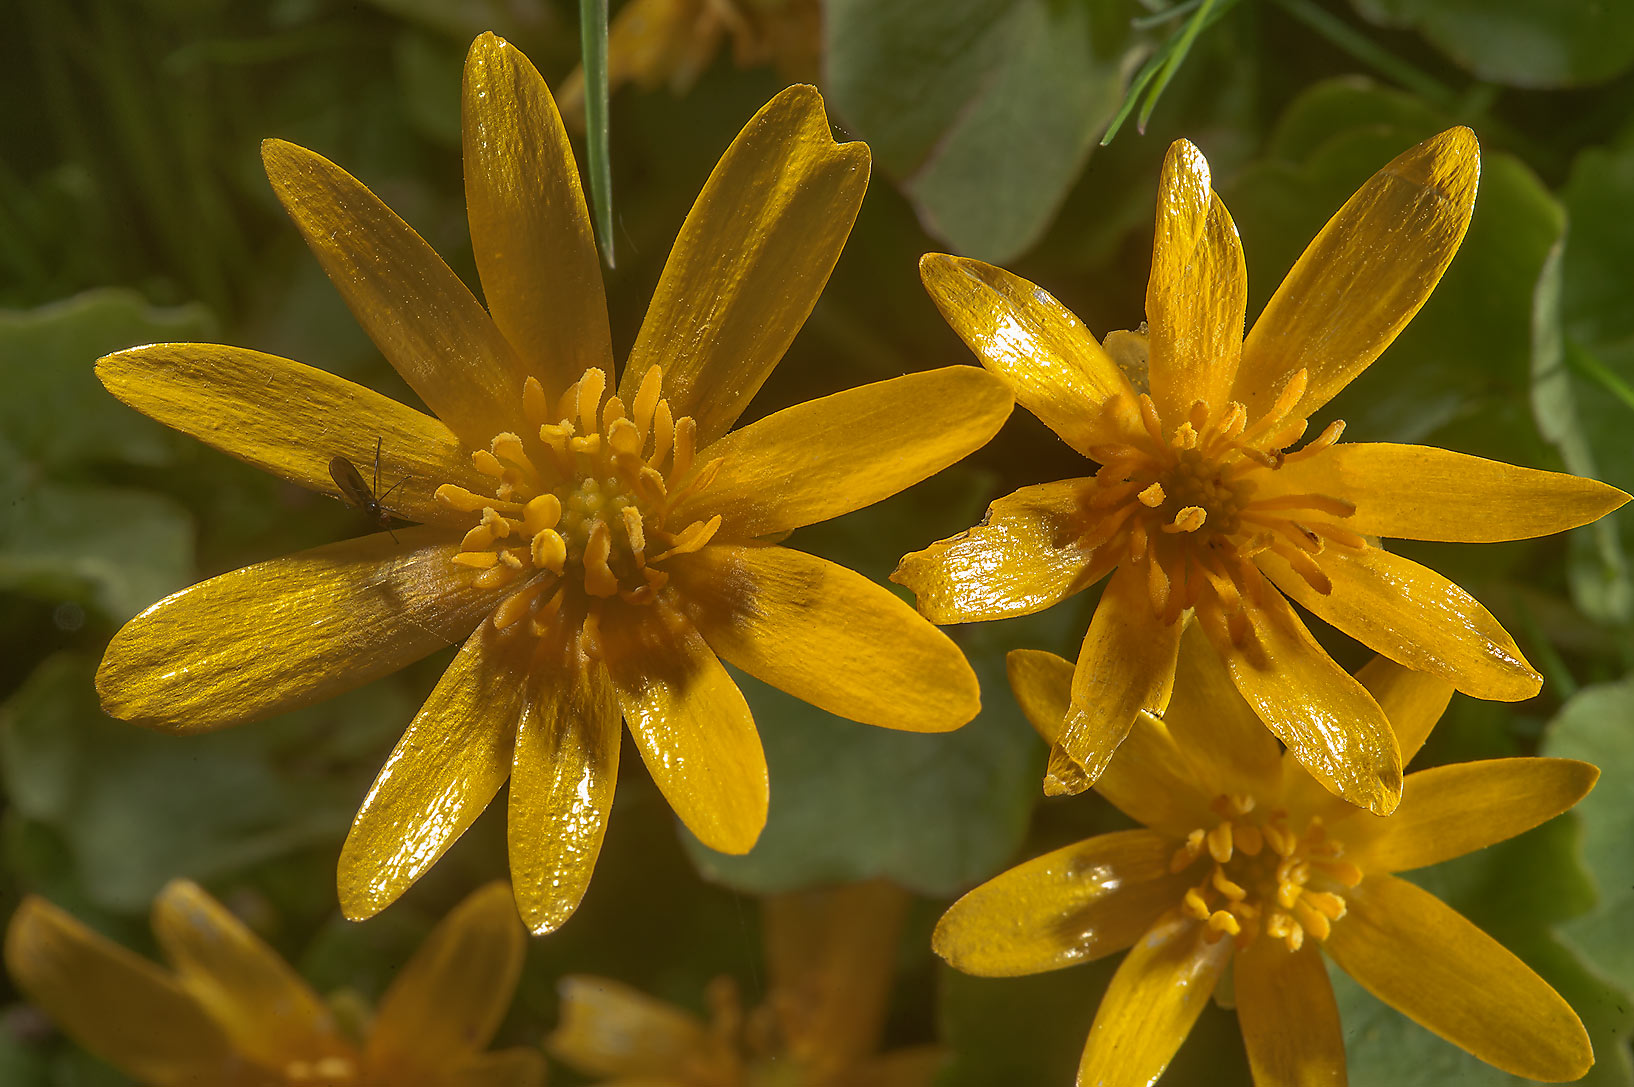 Blooming lesser celandine (Ficaria verna, Russian...a suburb of St.Petersburg, Russia